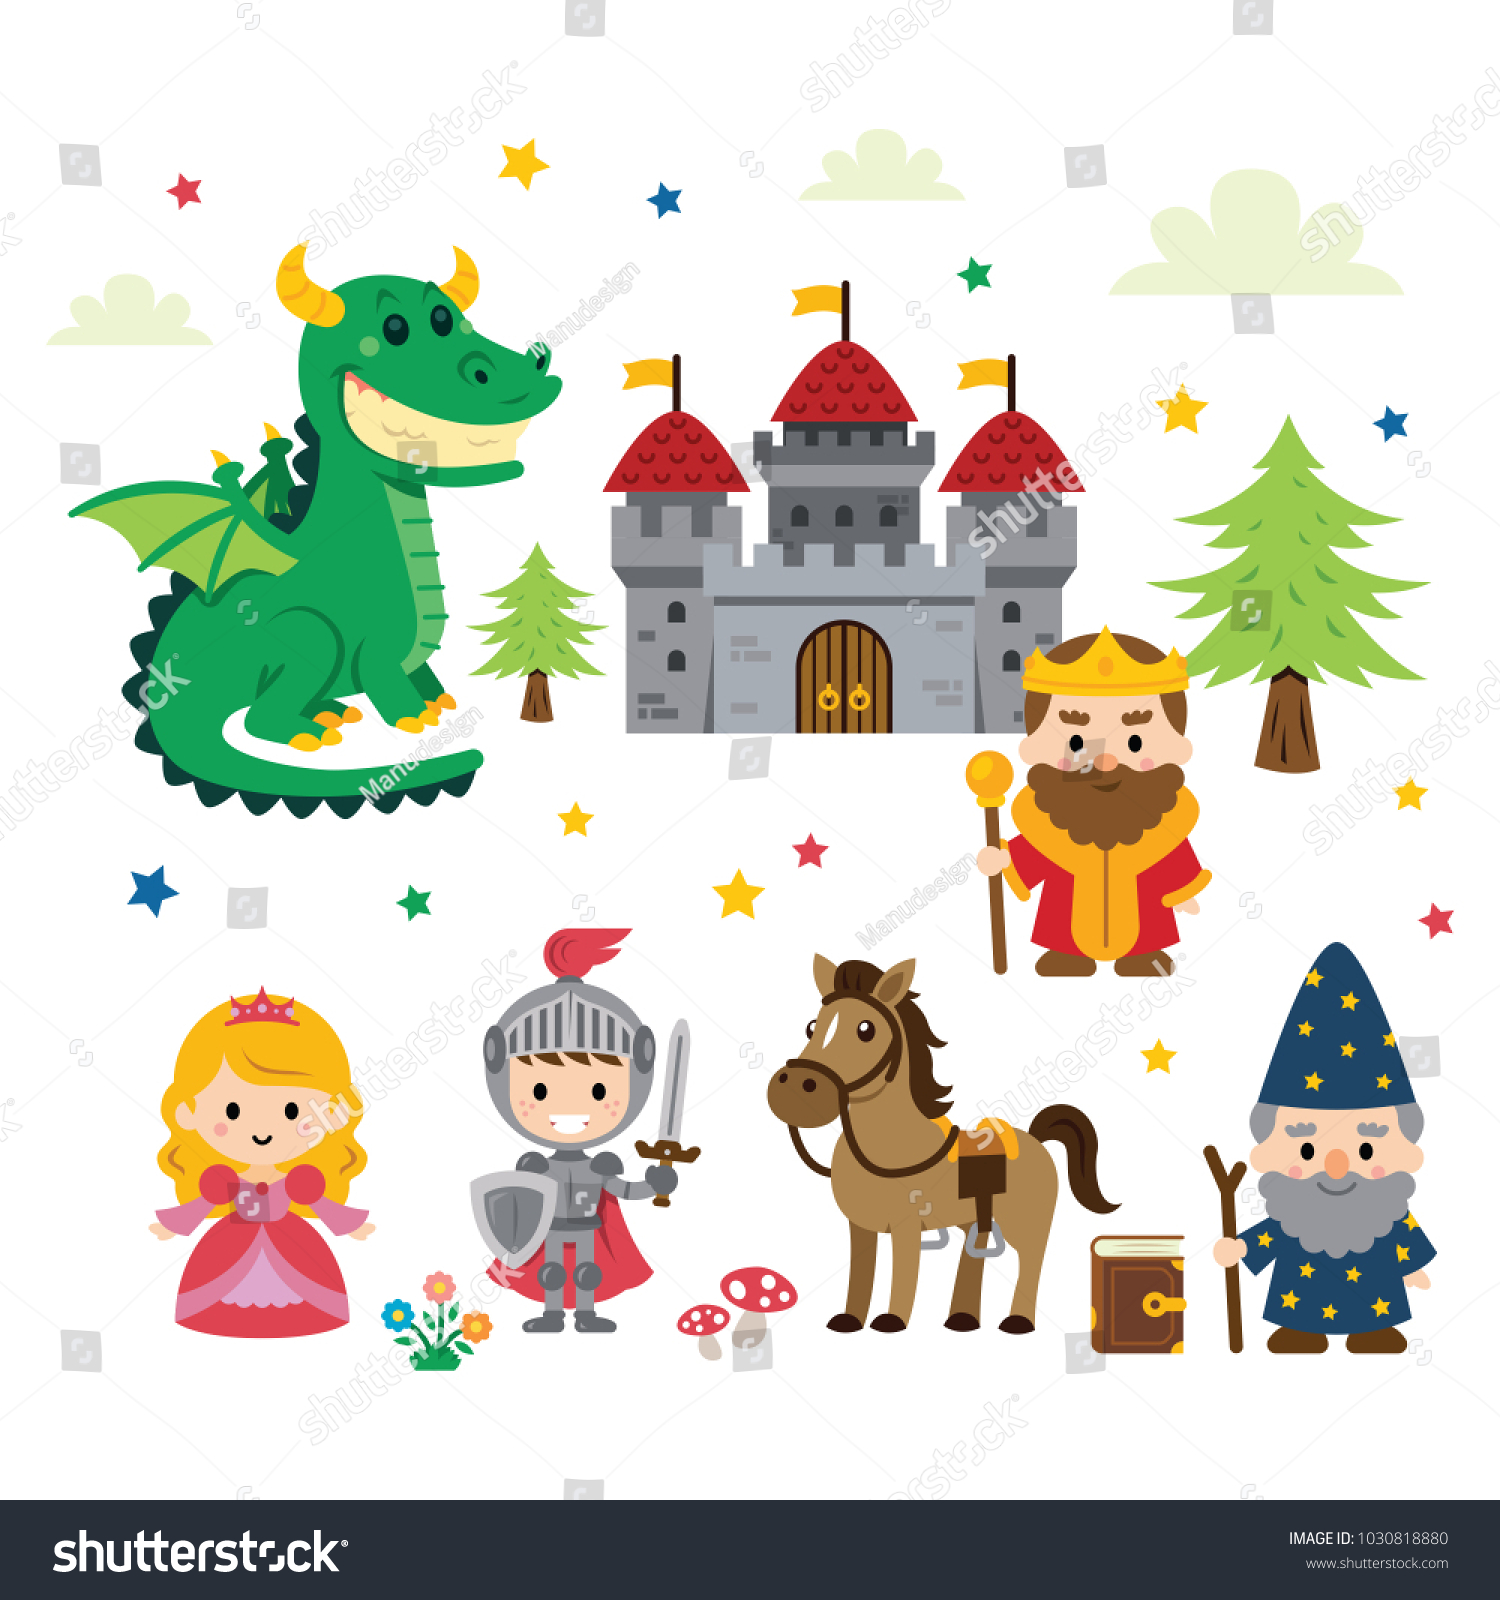 hight resolution of fantasy fairy tale clipart with different characters princess knight dragon wizard and king plus castle tree mushrooms flowers cloud and stars